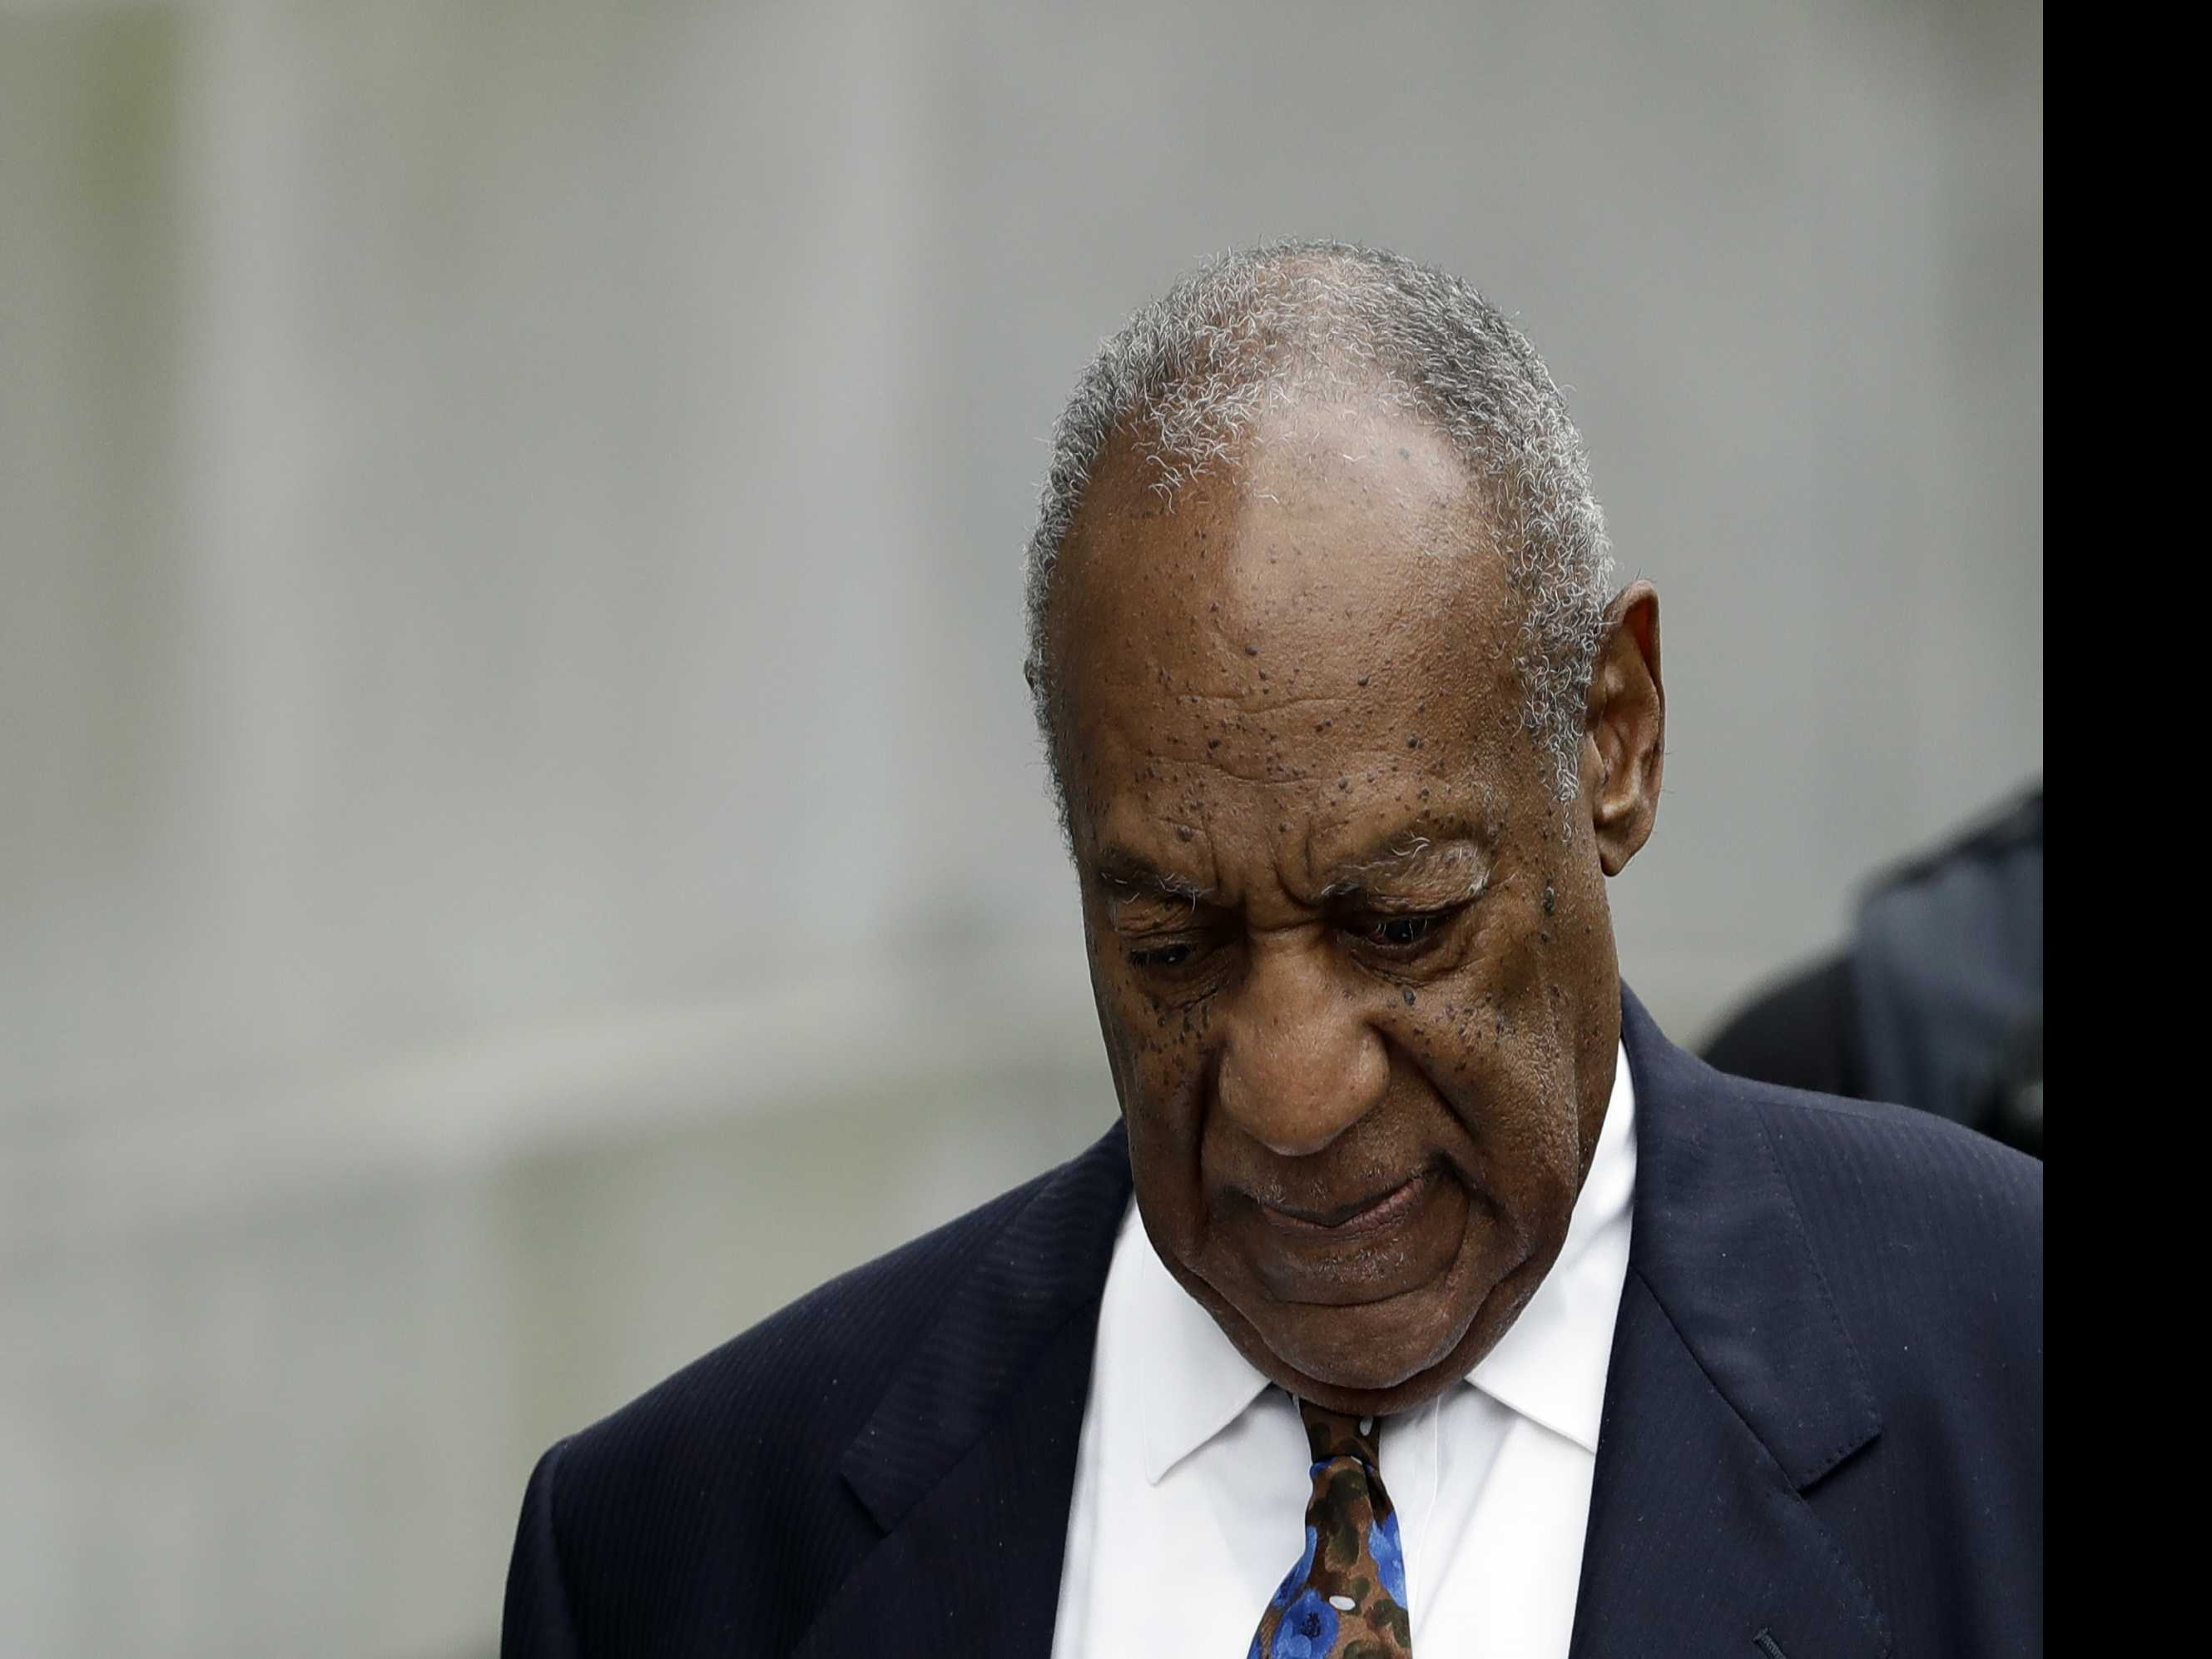 Bill Cosby's Day of Reckoning Comes in Sex Assault Case